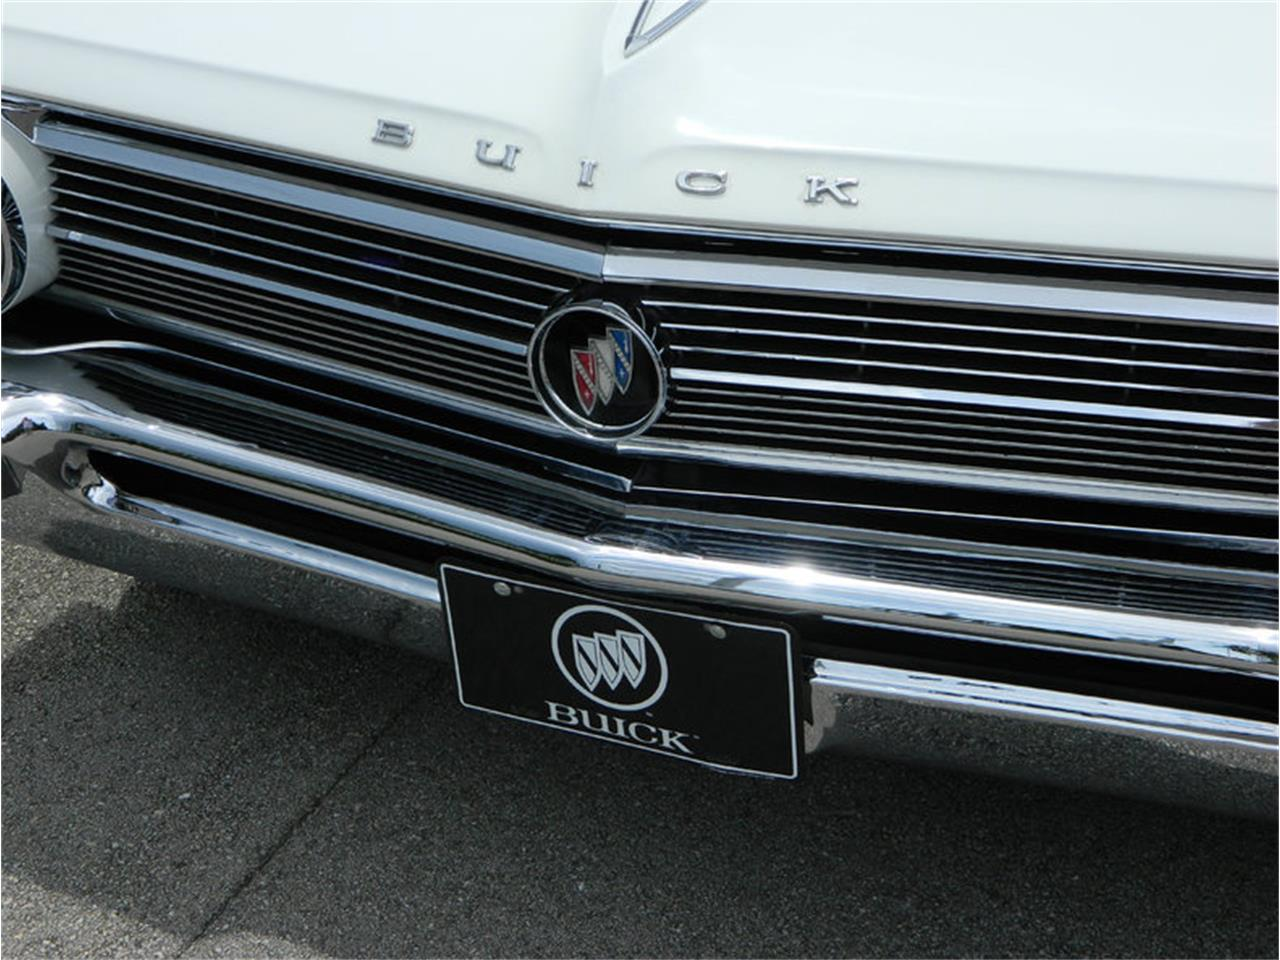 Large Picture of Classic '62 Buick Electra 225 located in Fort Lauderdale Florida - M8SN